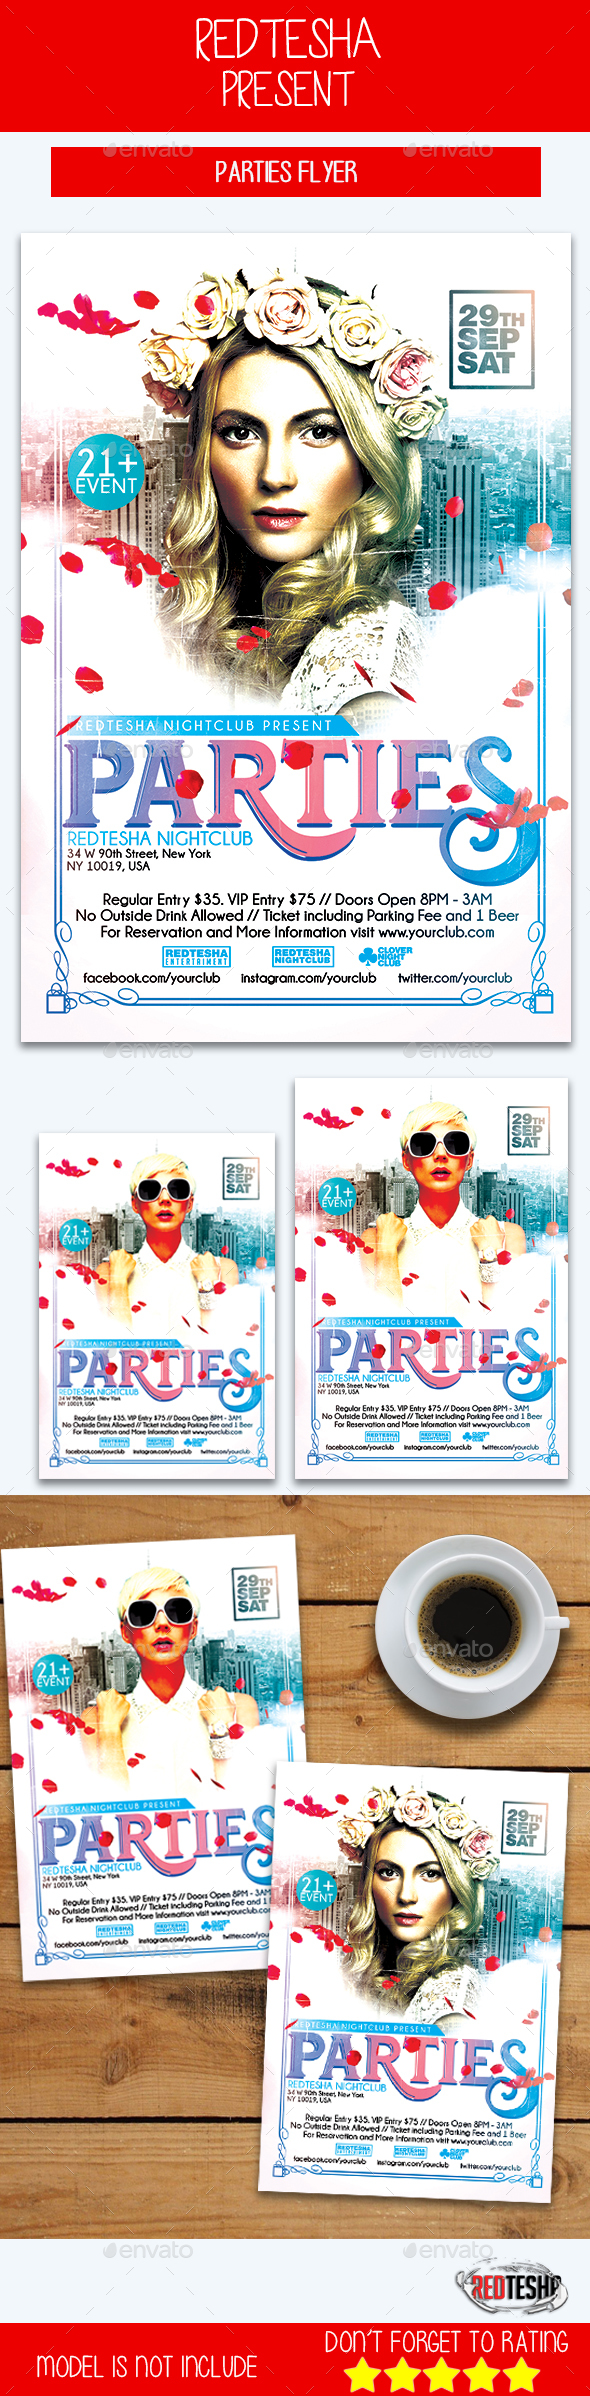 Parties Flyer - Clubs & Parties Events